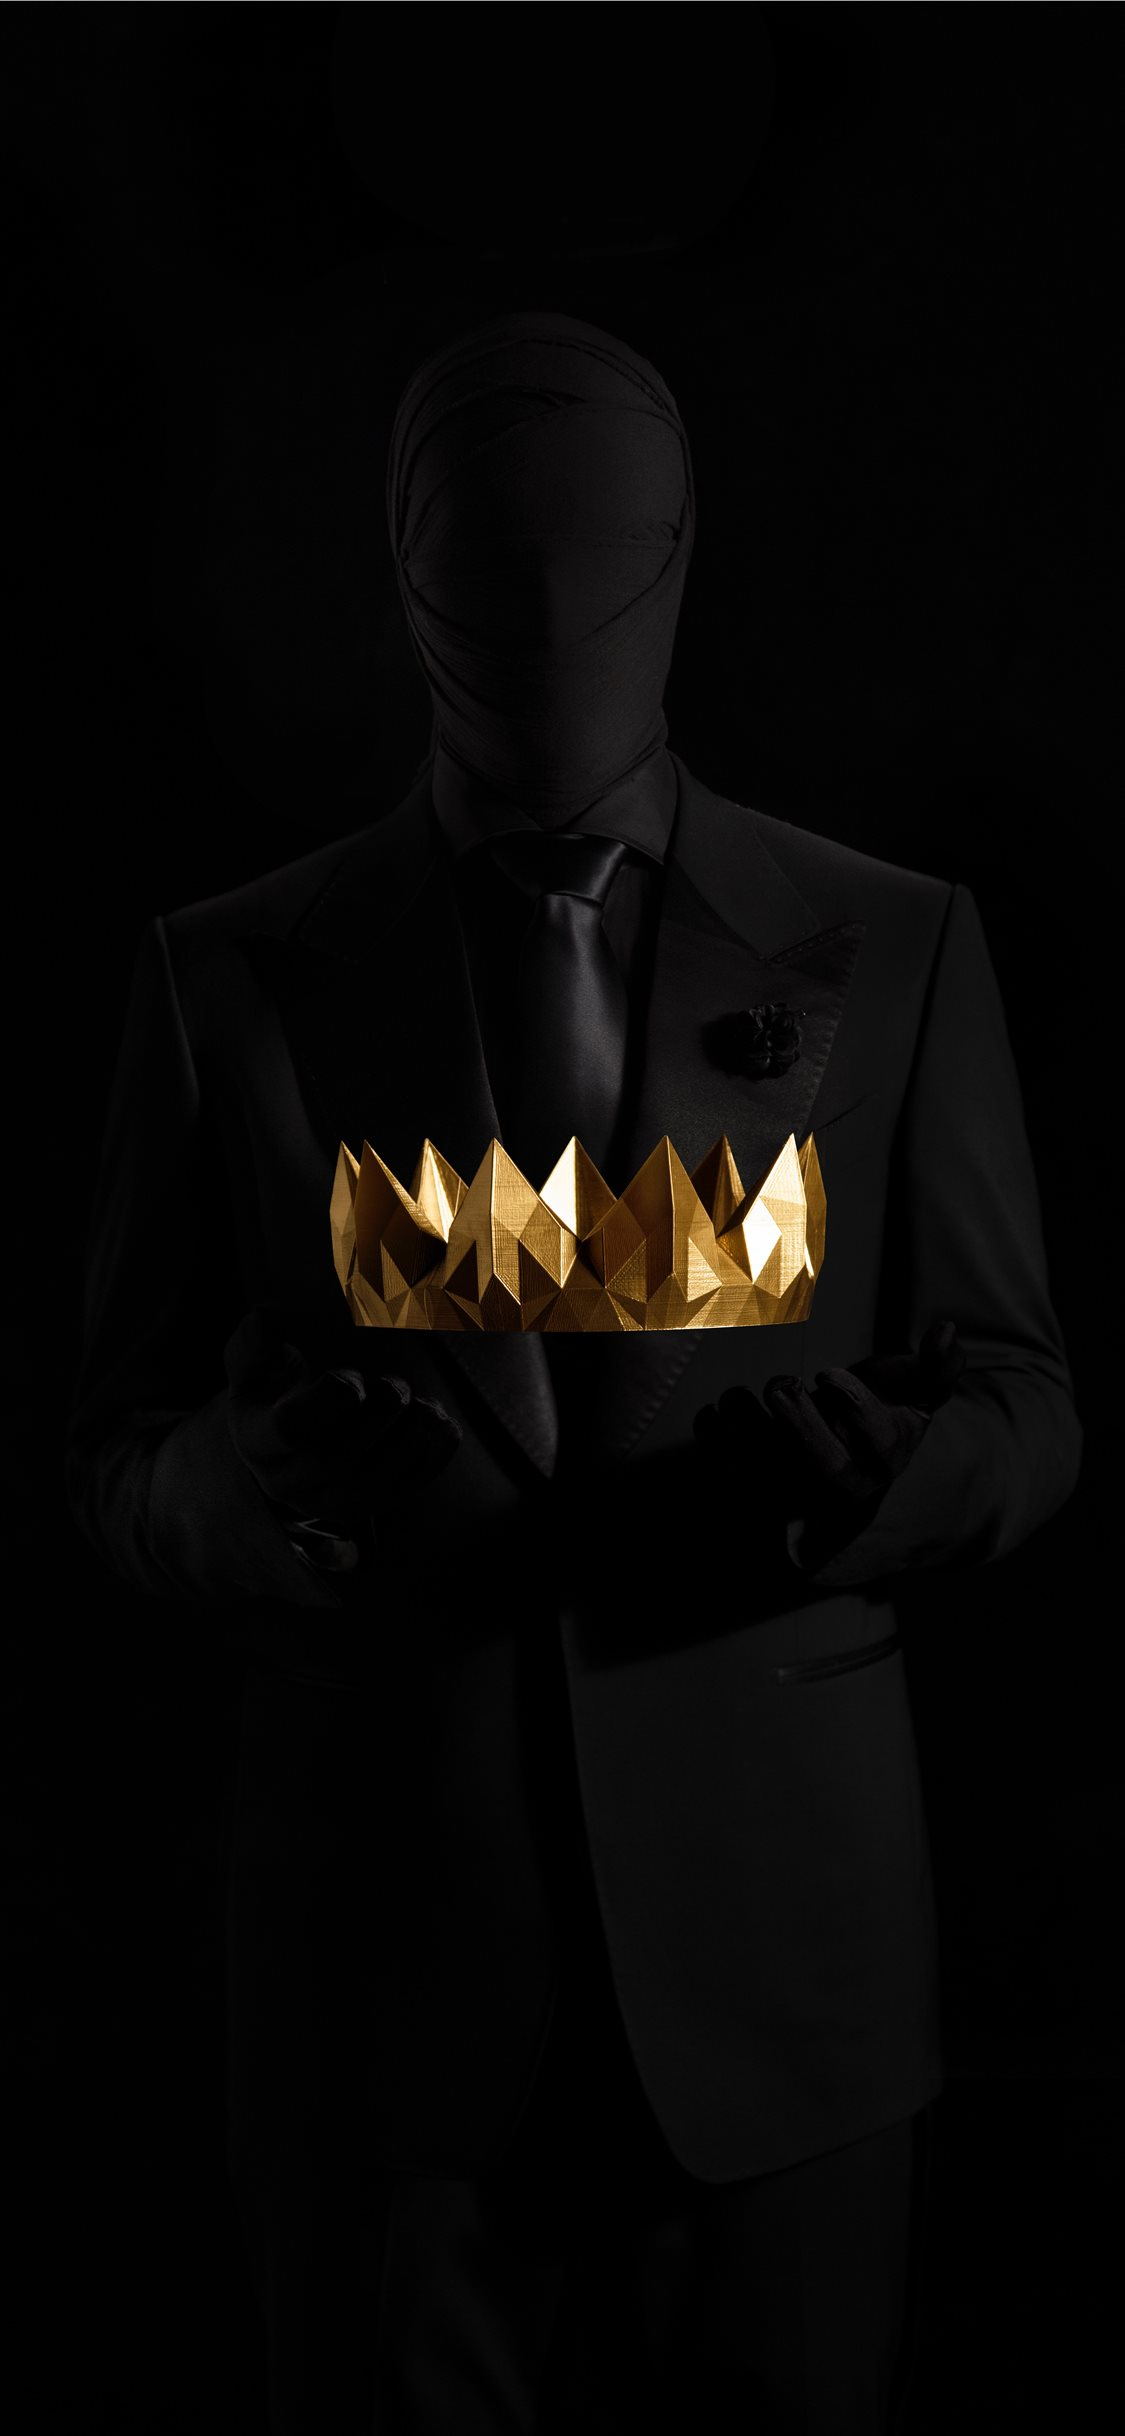 Silhouette Holding Gold Crown Iphone X Wallpapers Free Download